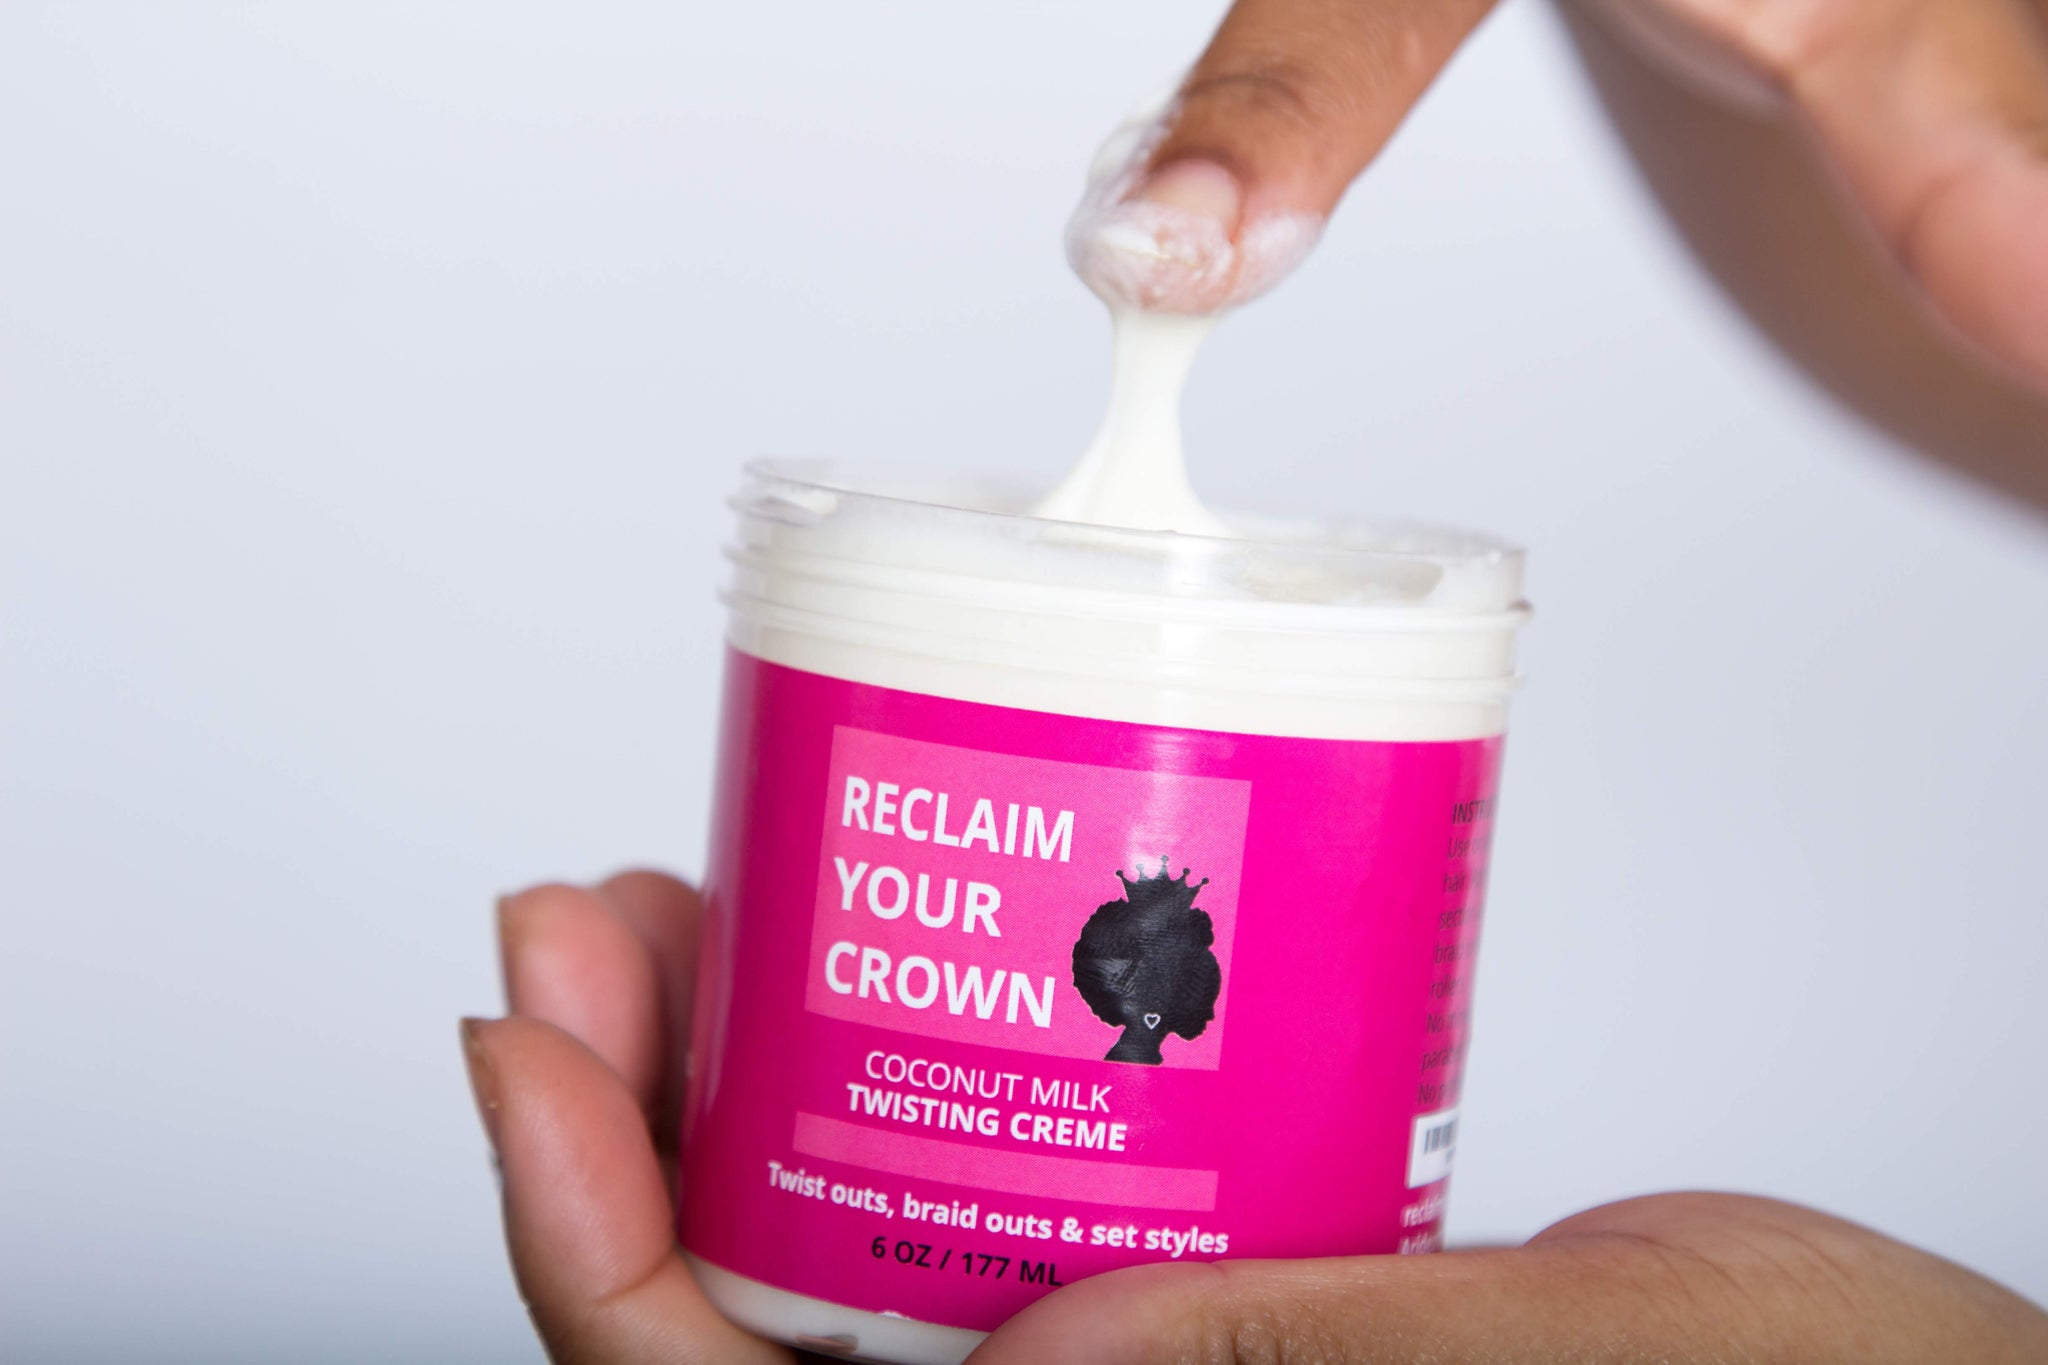 Reclaim Your Crown Twisting Creme